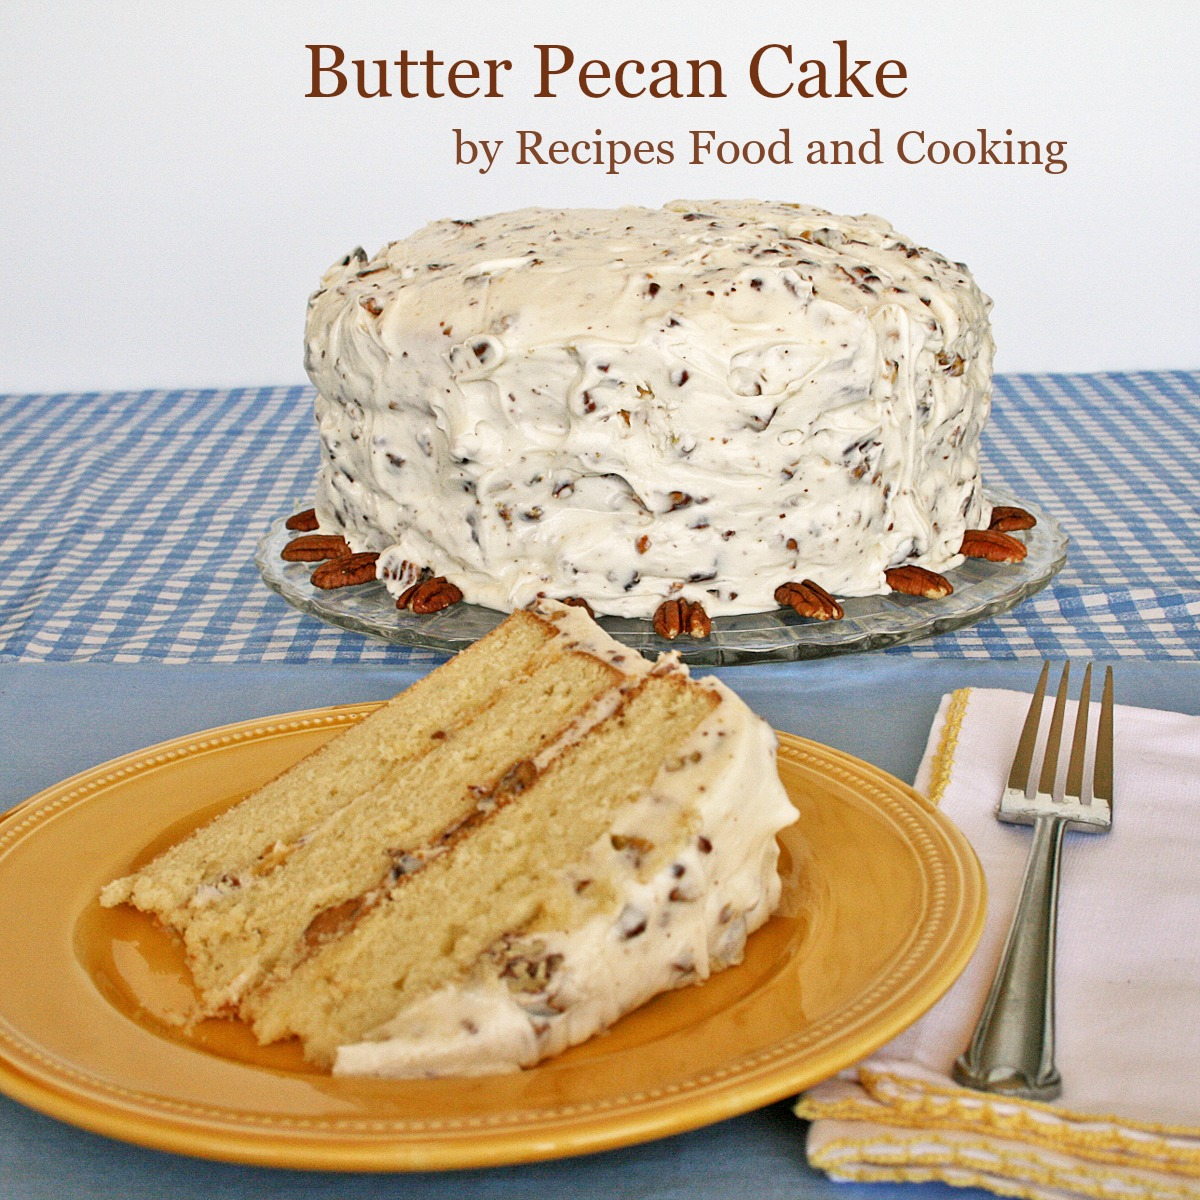 Butter Pecan Cookie Recipe Using Cake Mix